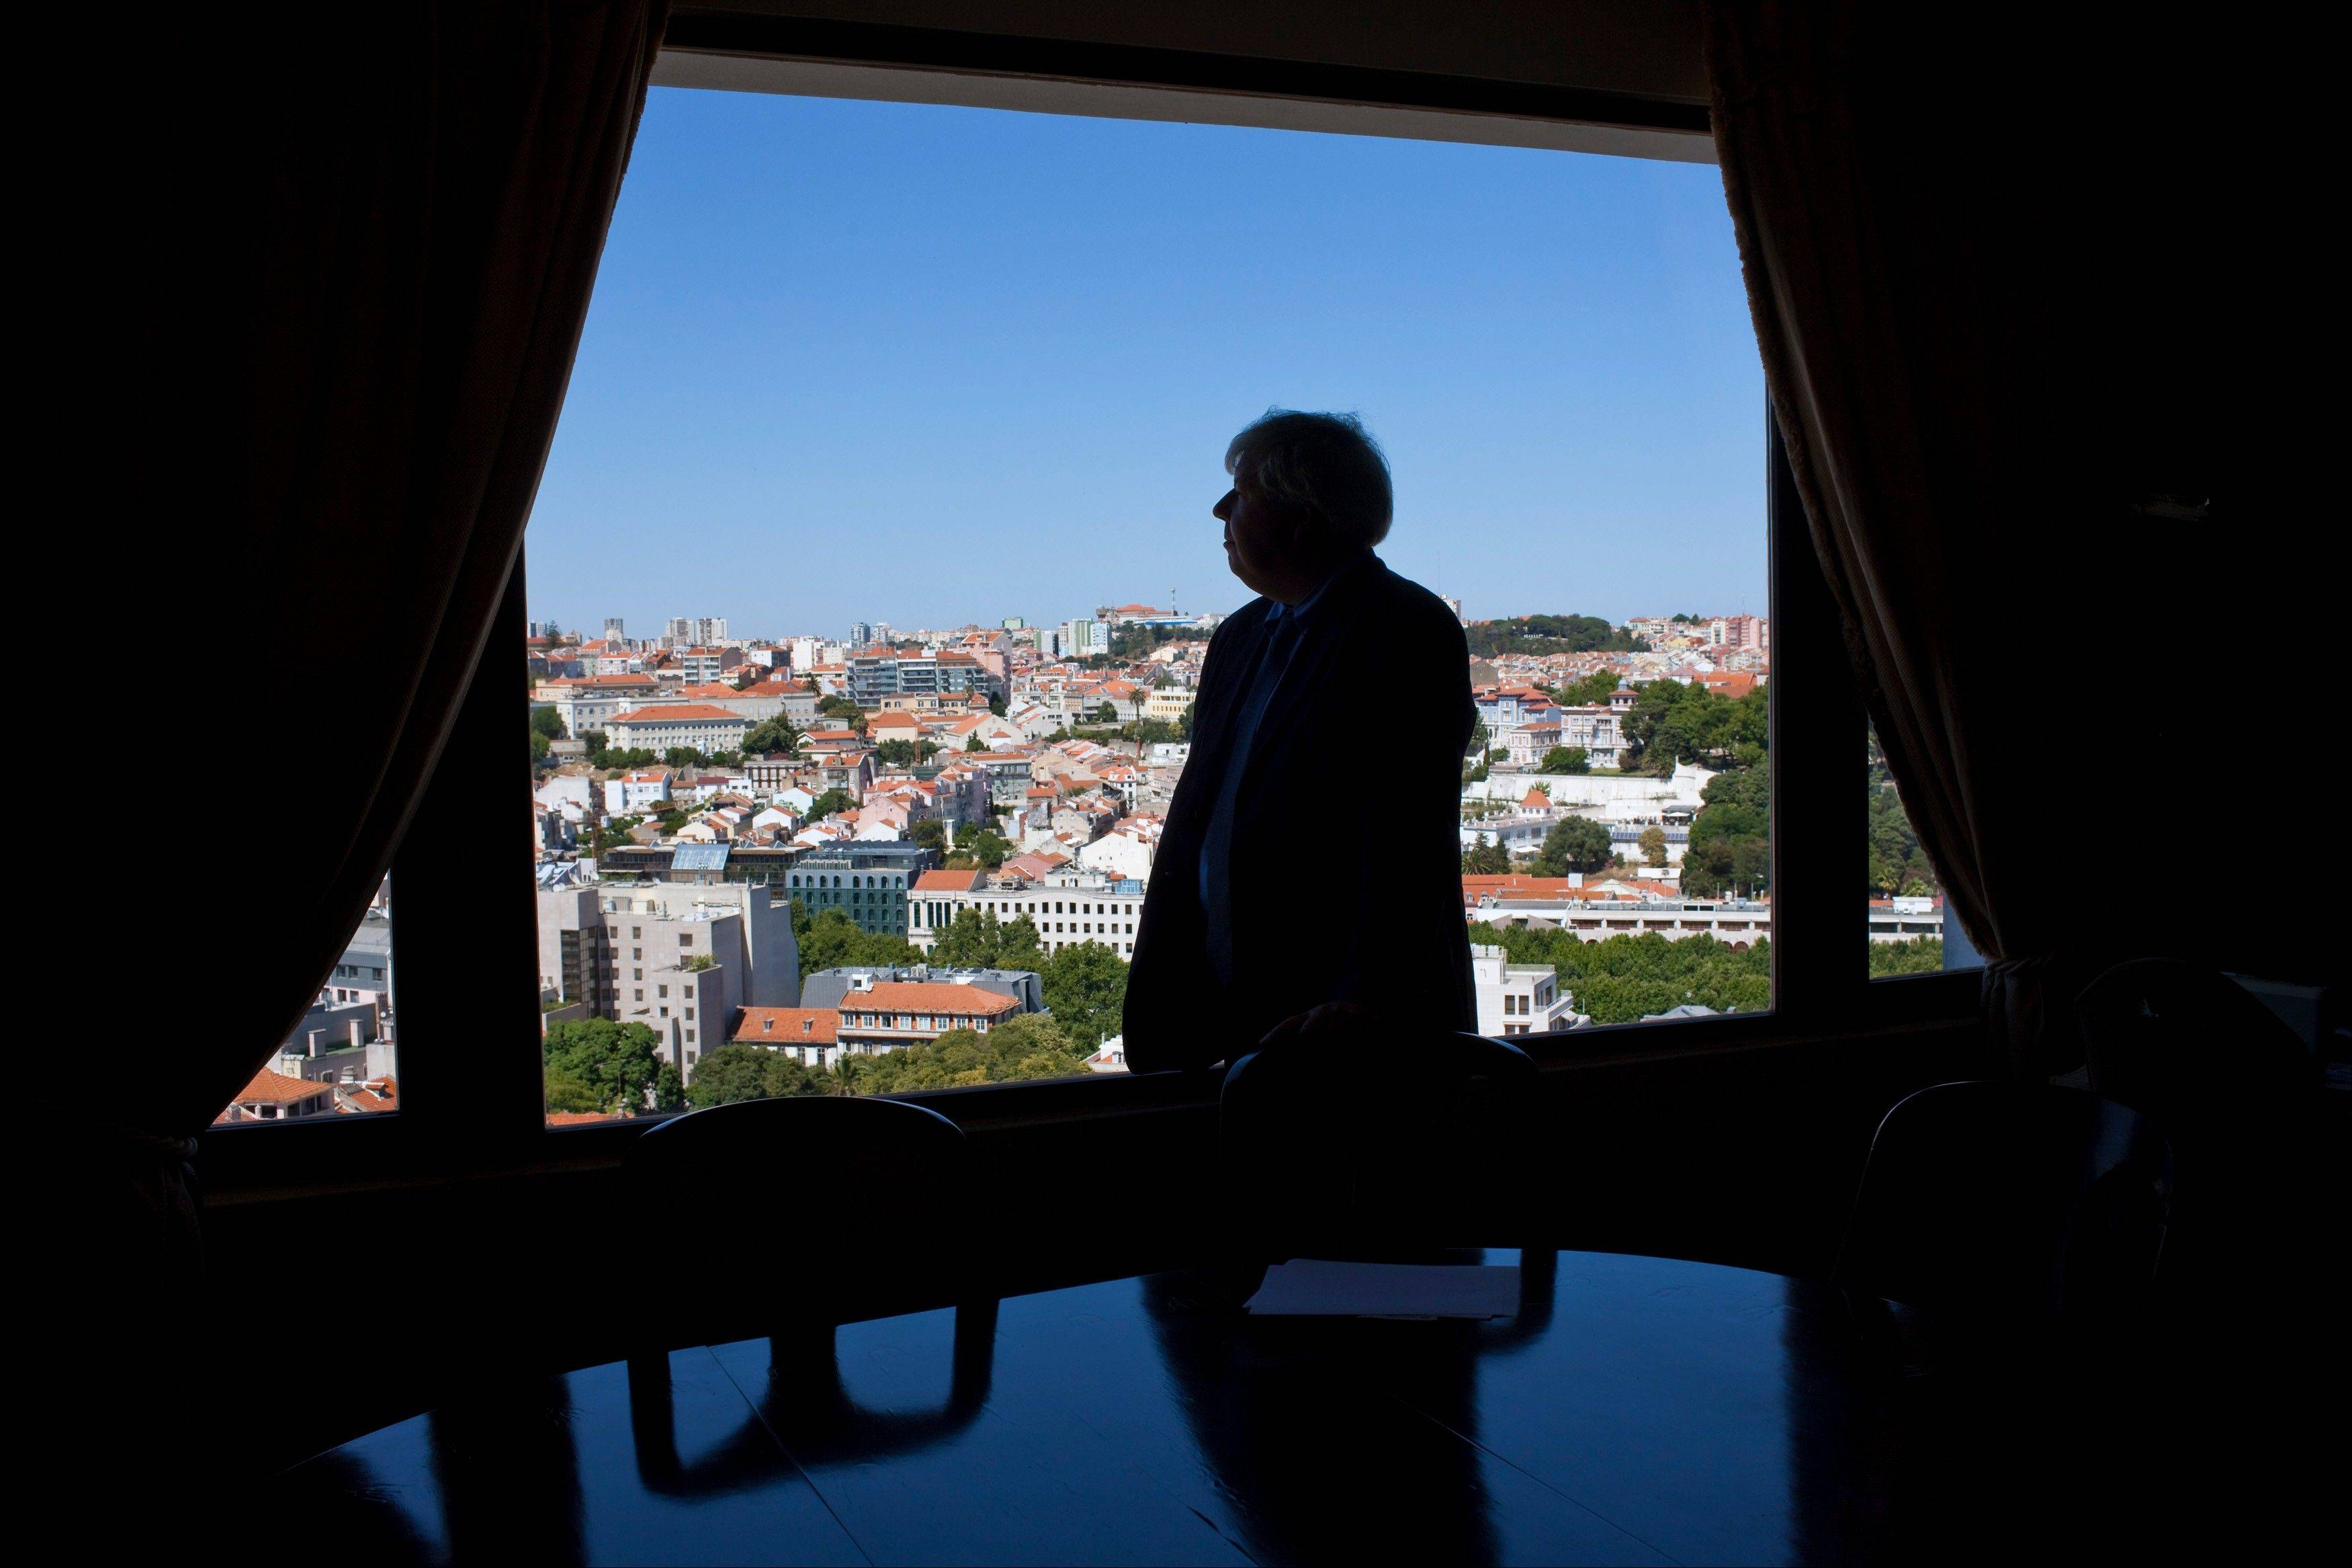 Luis Menezes Leitao, president of the Lisbon Property Owners' Association, looks out of the window of his office at the association's headquarters in Lisbon's upper-class Principe Real neighborhood during an interview.